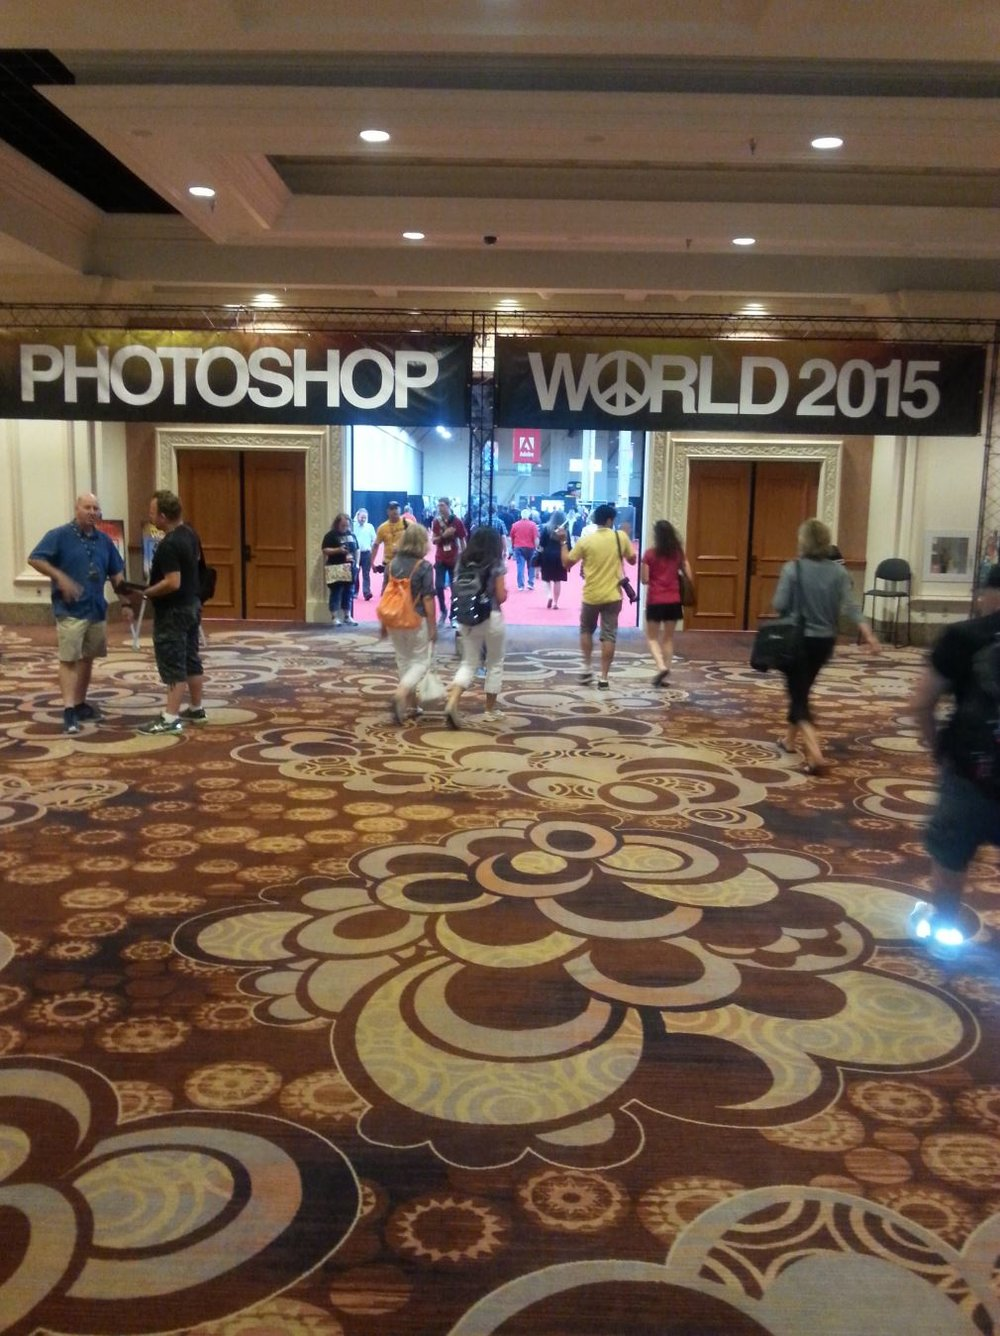 2015 Photoshop World Conference